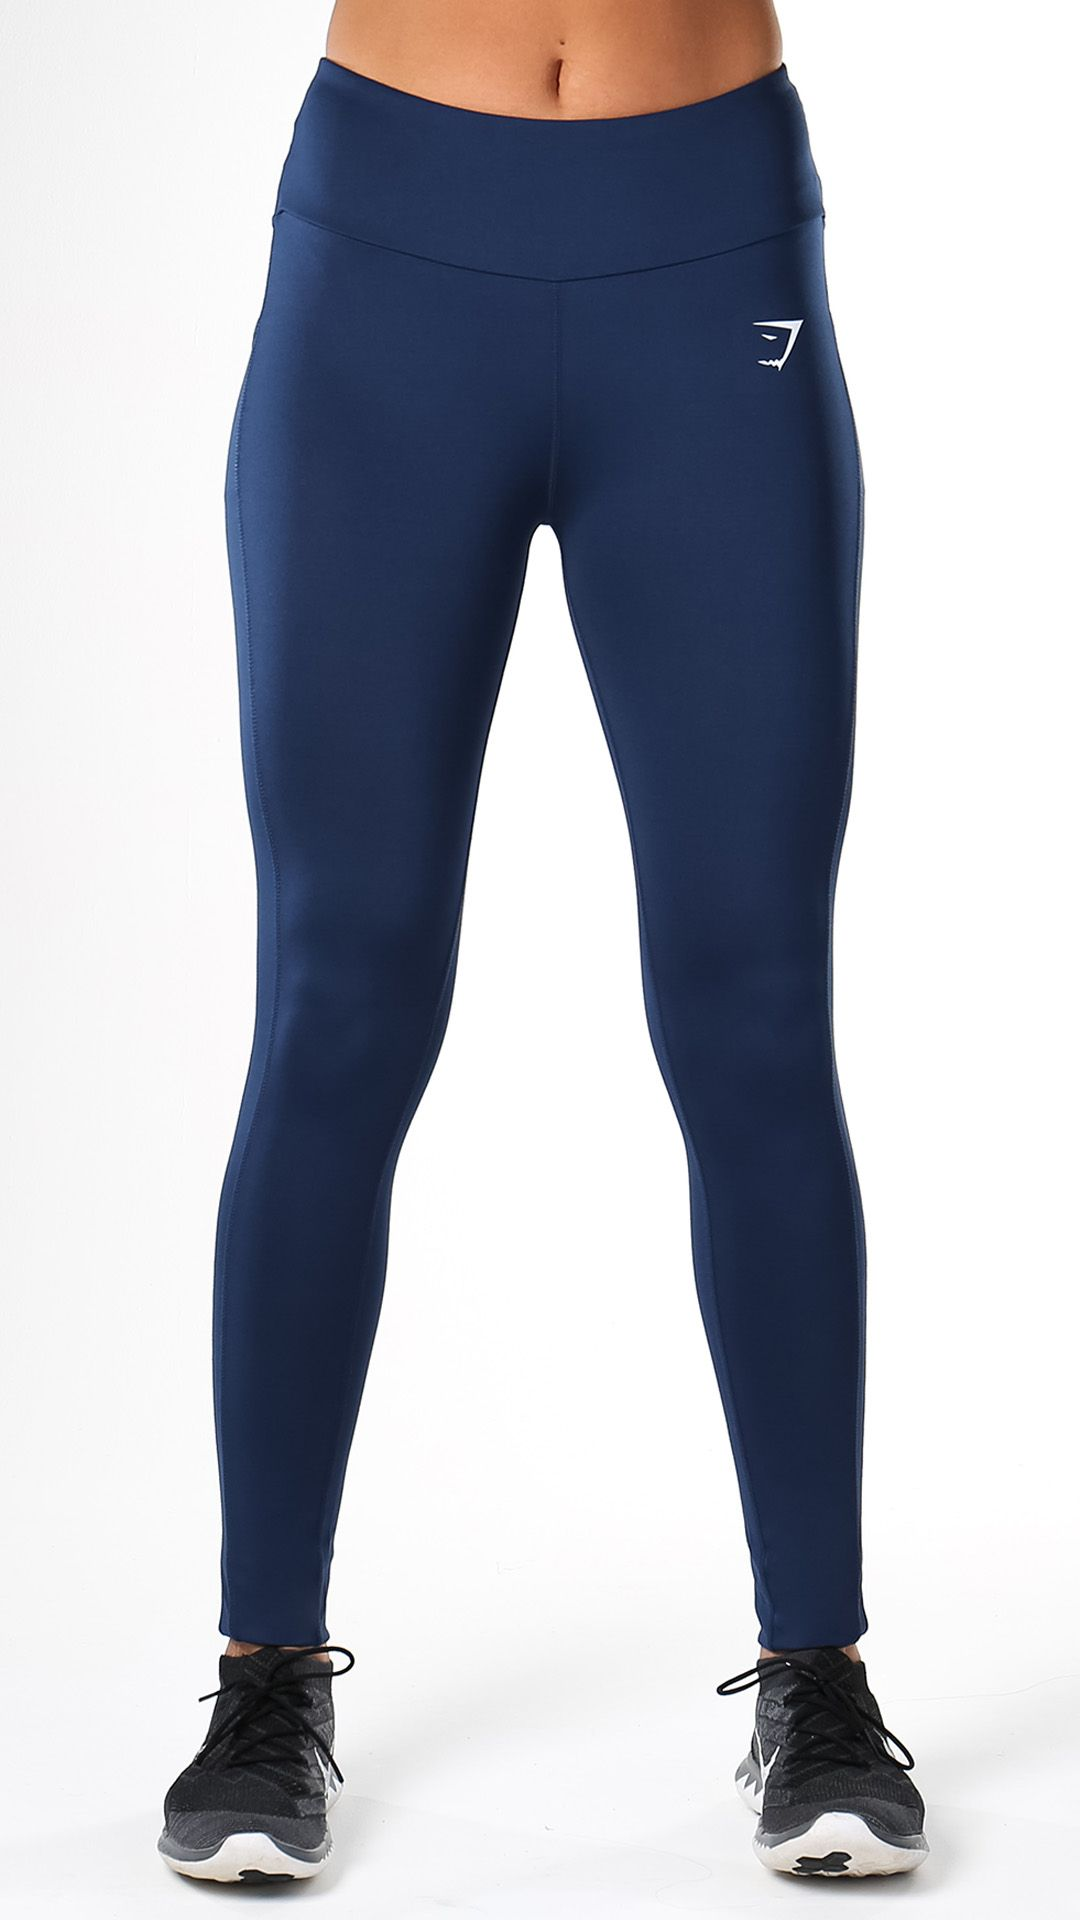 d5da32d7f7160 A high-waisted and flexible exercise leggings, with Gymshark DRY technology  for a cool, comfortable workout. Sculpture gym leggings in Sapphire Blue  launch ...